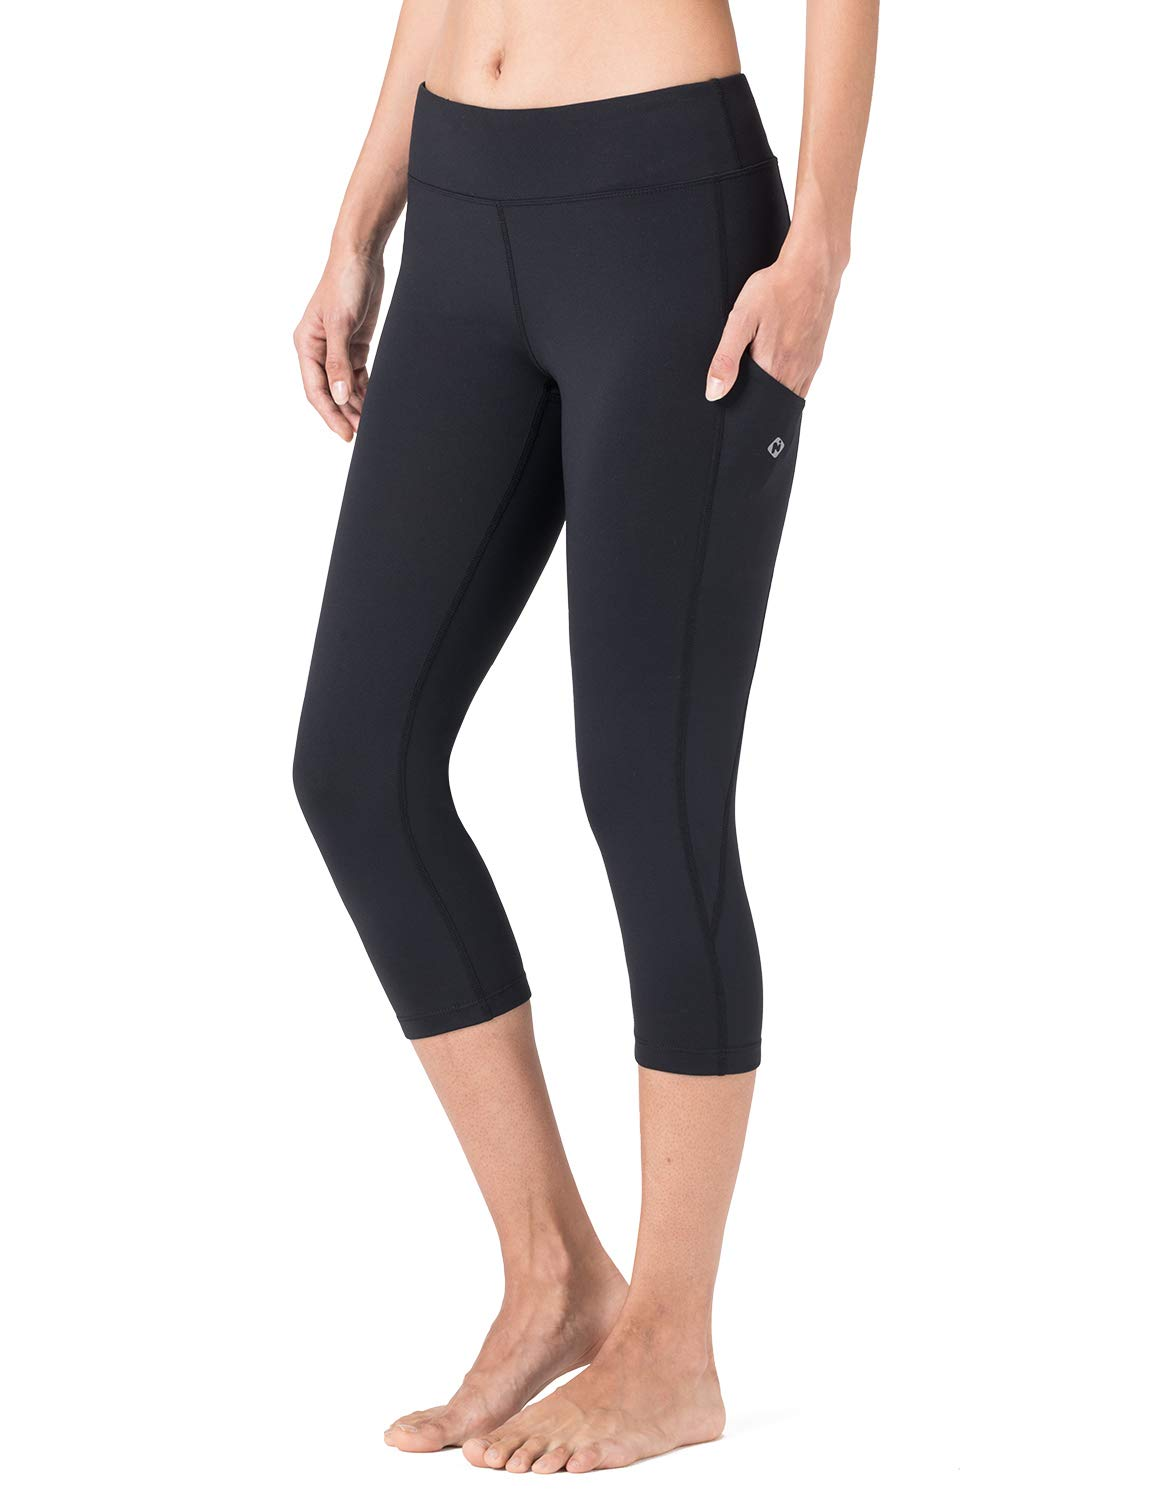 Naviskin Women S Yoga Running Capri Leggings Workout